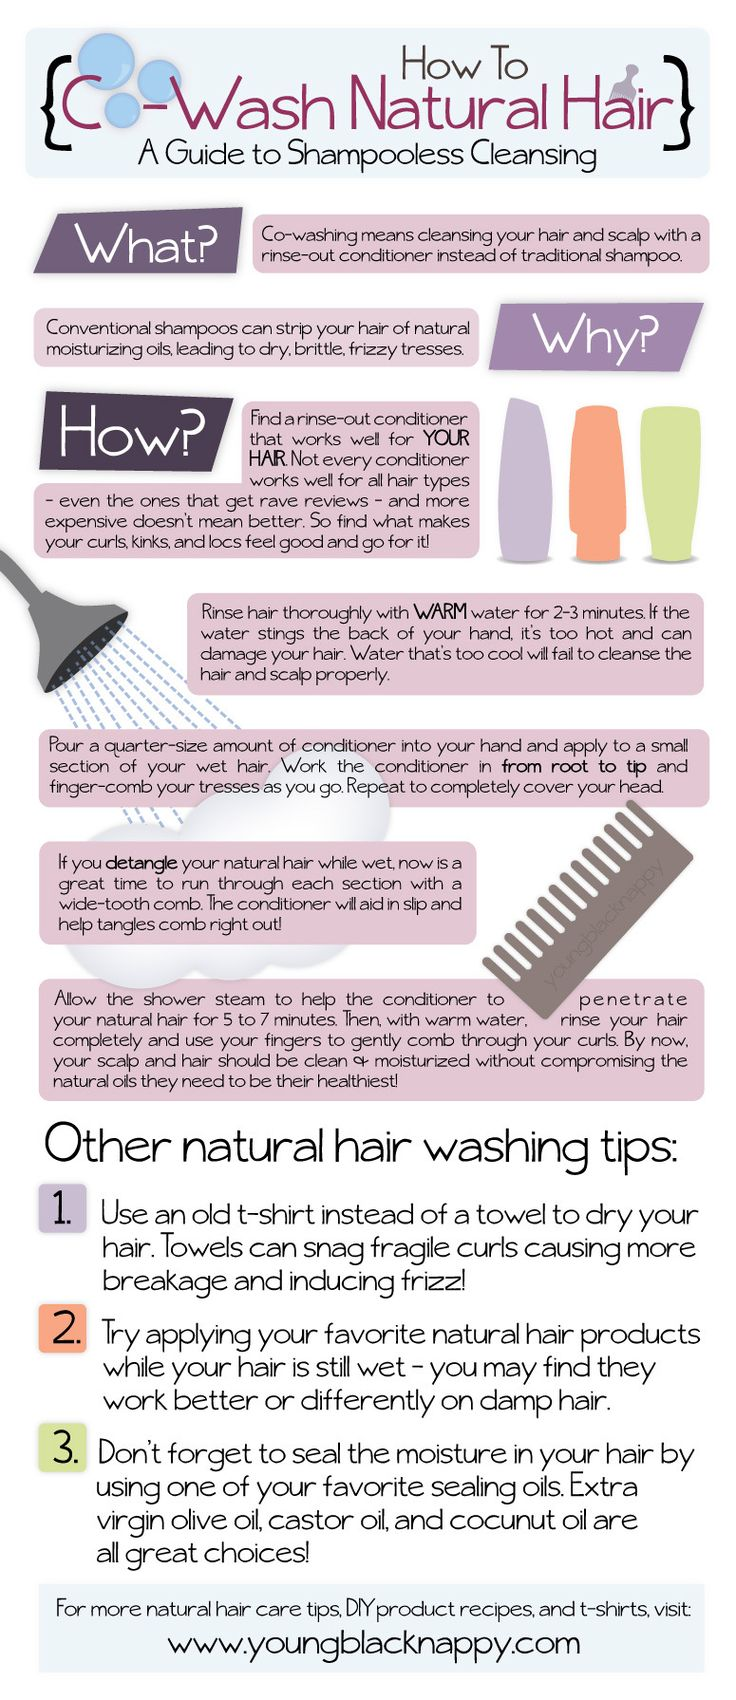 How to Co-Wash Natural Hair...I have been using this method for about a year and love it. I rarely ever use shampoo unless I go swimming.